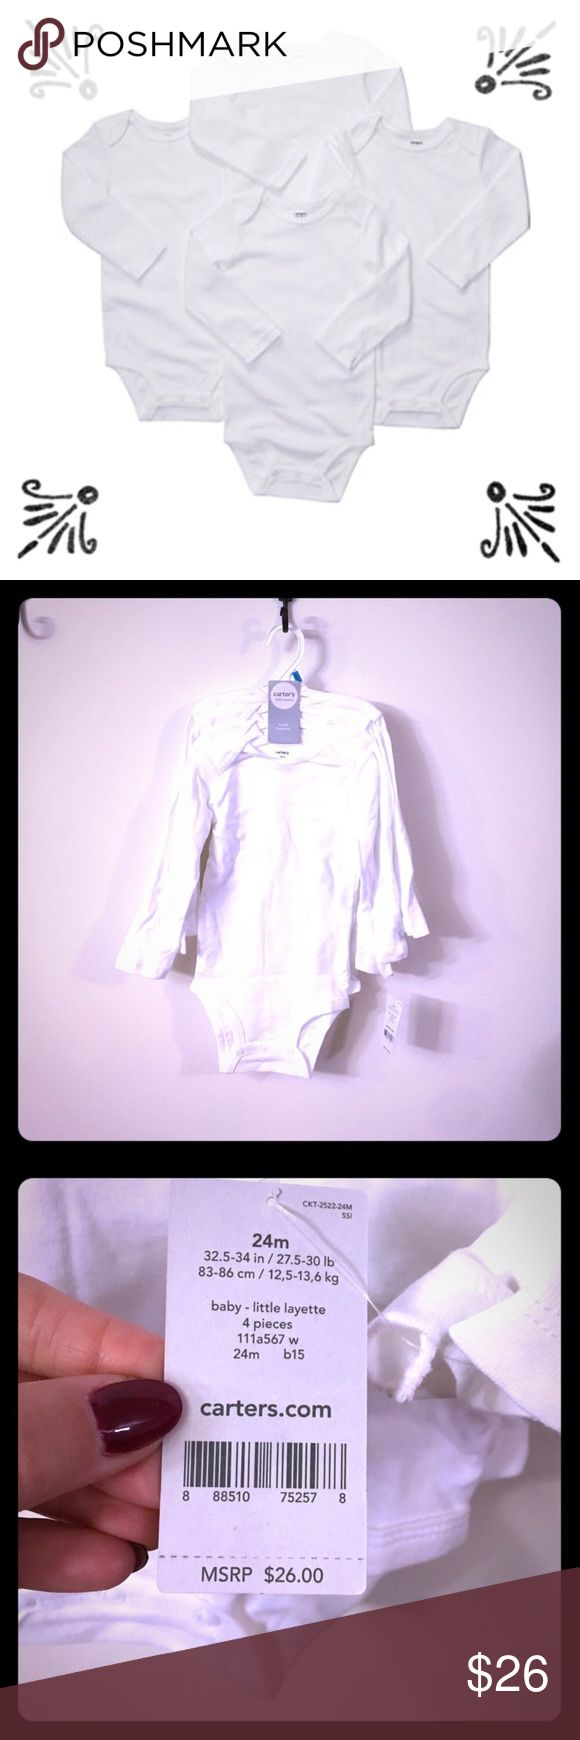 "NWT Carter's 24M 4-pack long sleeved bodysuits 📦Same day shipping (excluding Sun/holidays or orders placed after P.O. Closed) ❤️Save on shipping: Add all of your ""likes"" to a bundle and submit an offer  Brand new with tags: 4 pack of white long sleeved Carter's bodysuits size 24M. Durable cotton: great for layering. Open neckline allows you to pull the bodysuit down your little one in case of an accident so you do not have to pull a mess over their head. My kiddo moved up to 2T before we…"